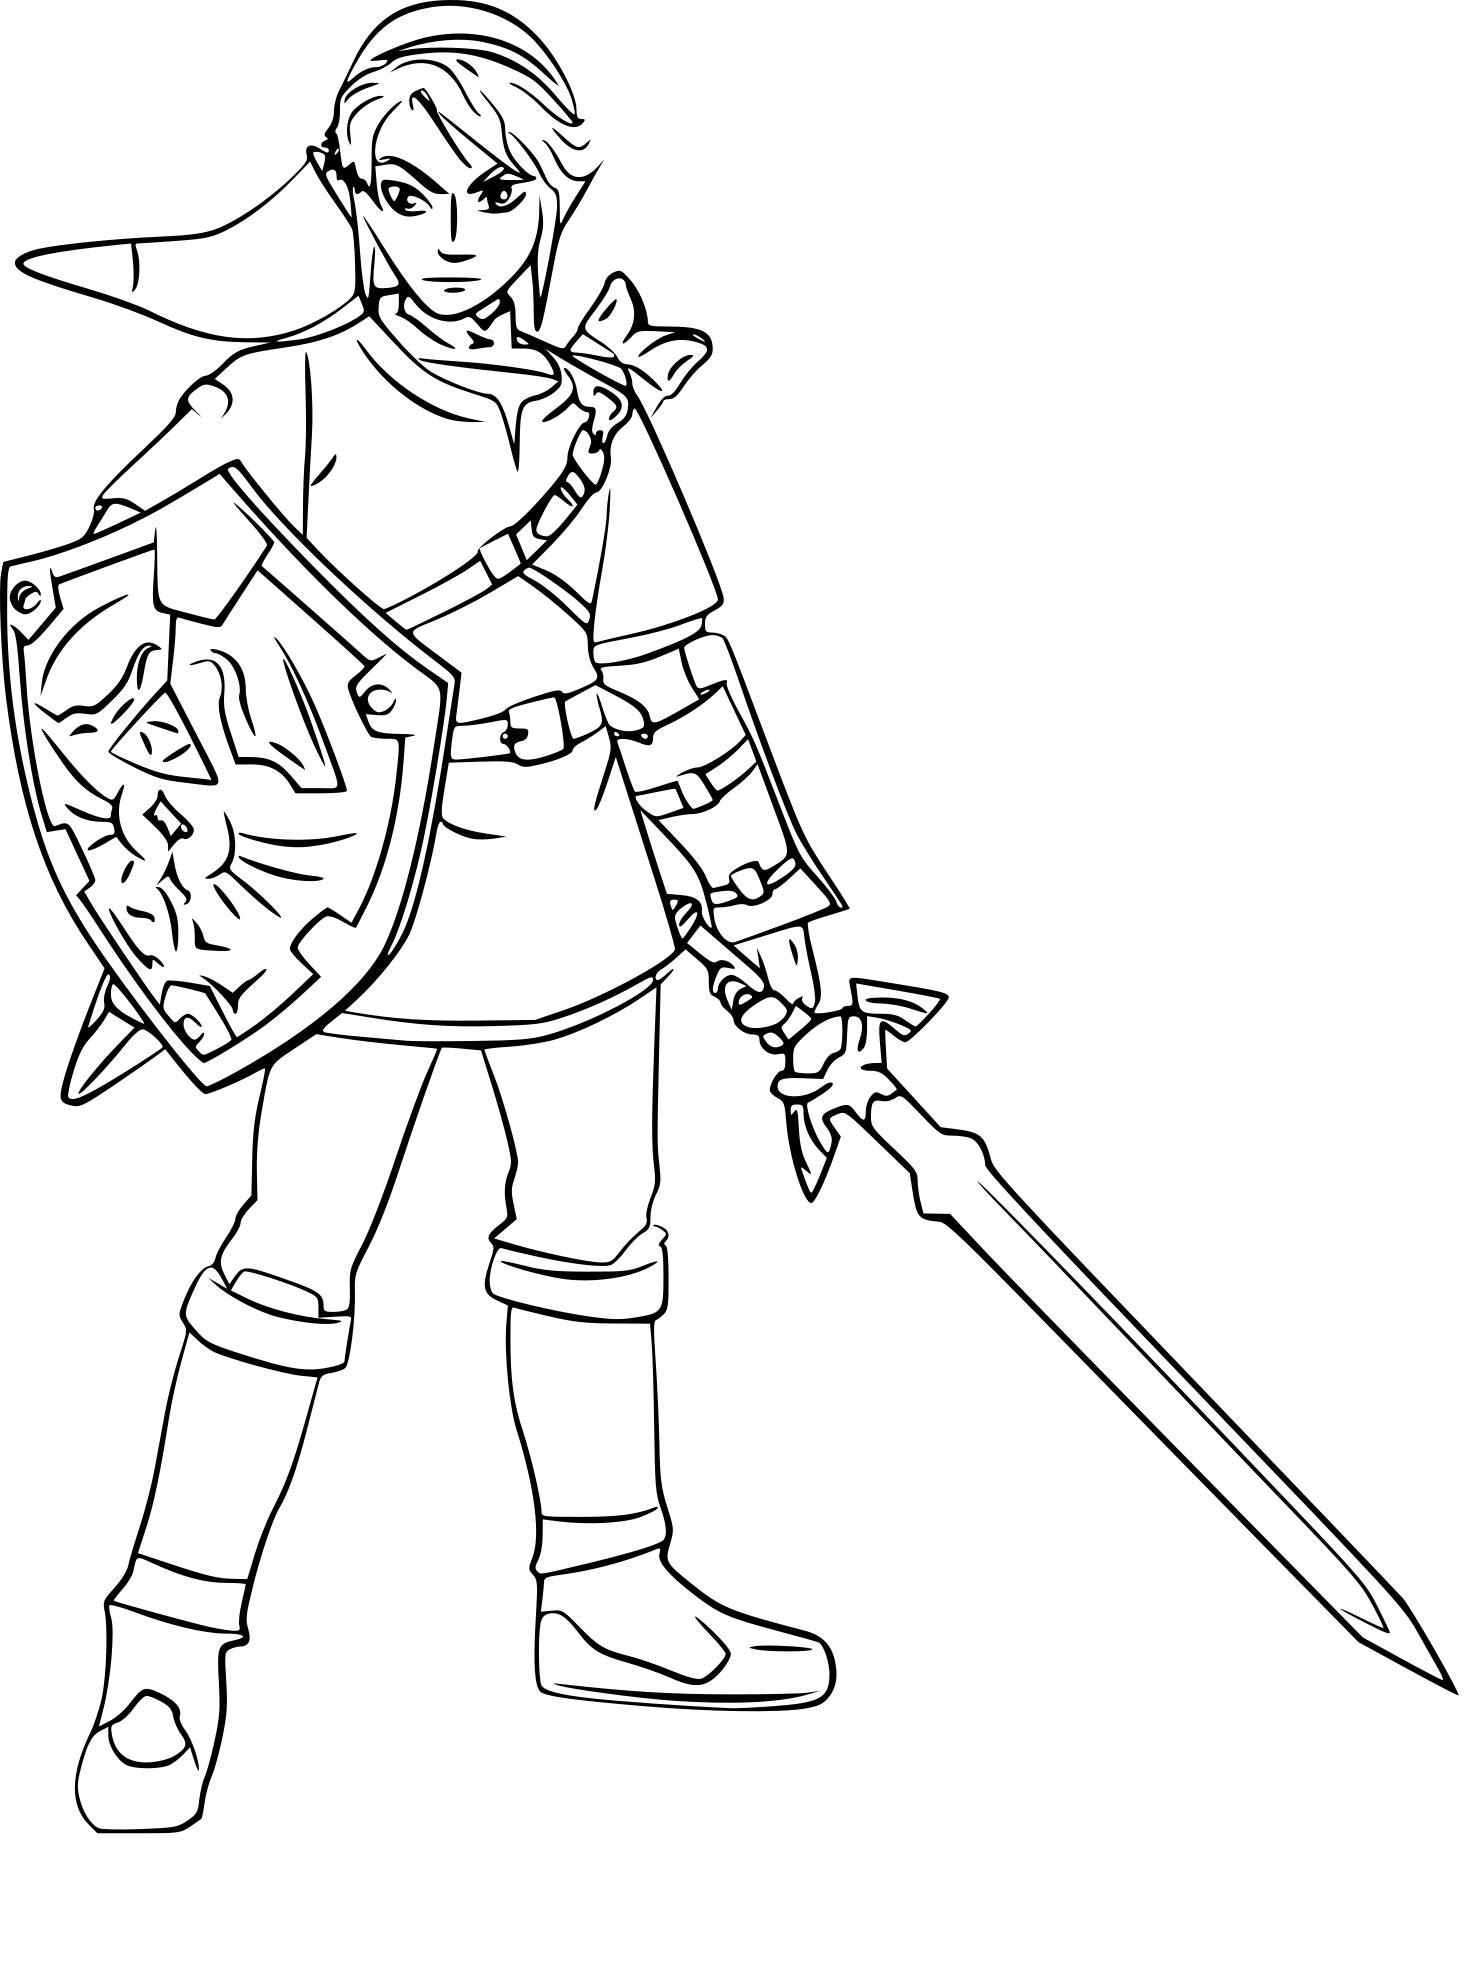 The Legend Of Zelda Coloring Pages Free At Getdrawings Com